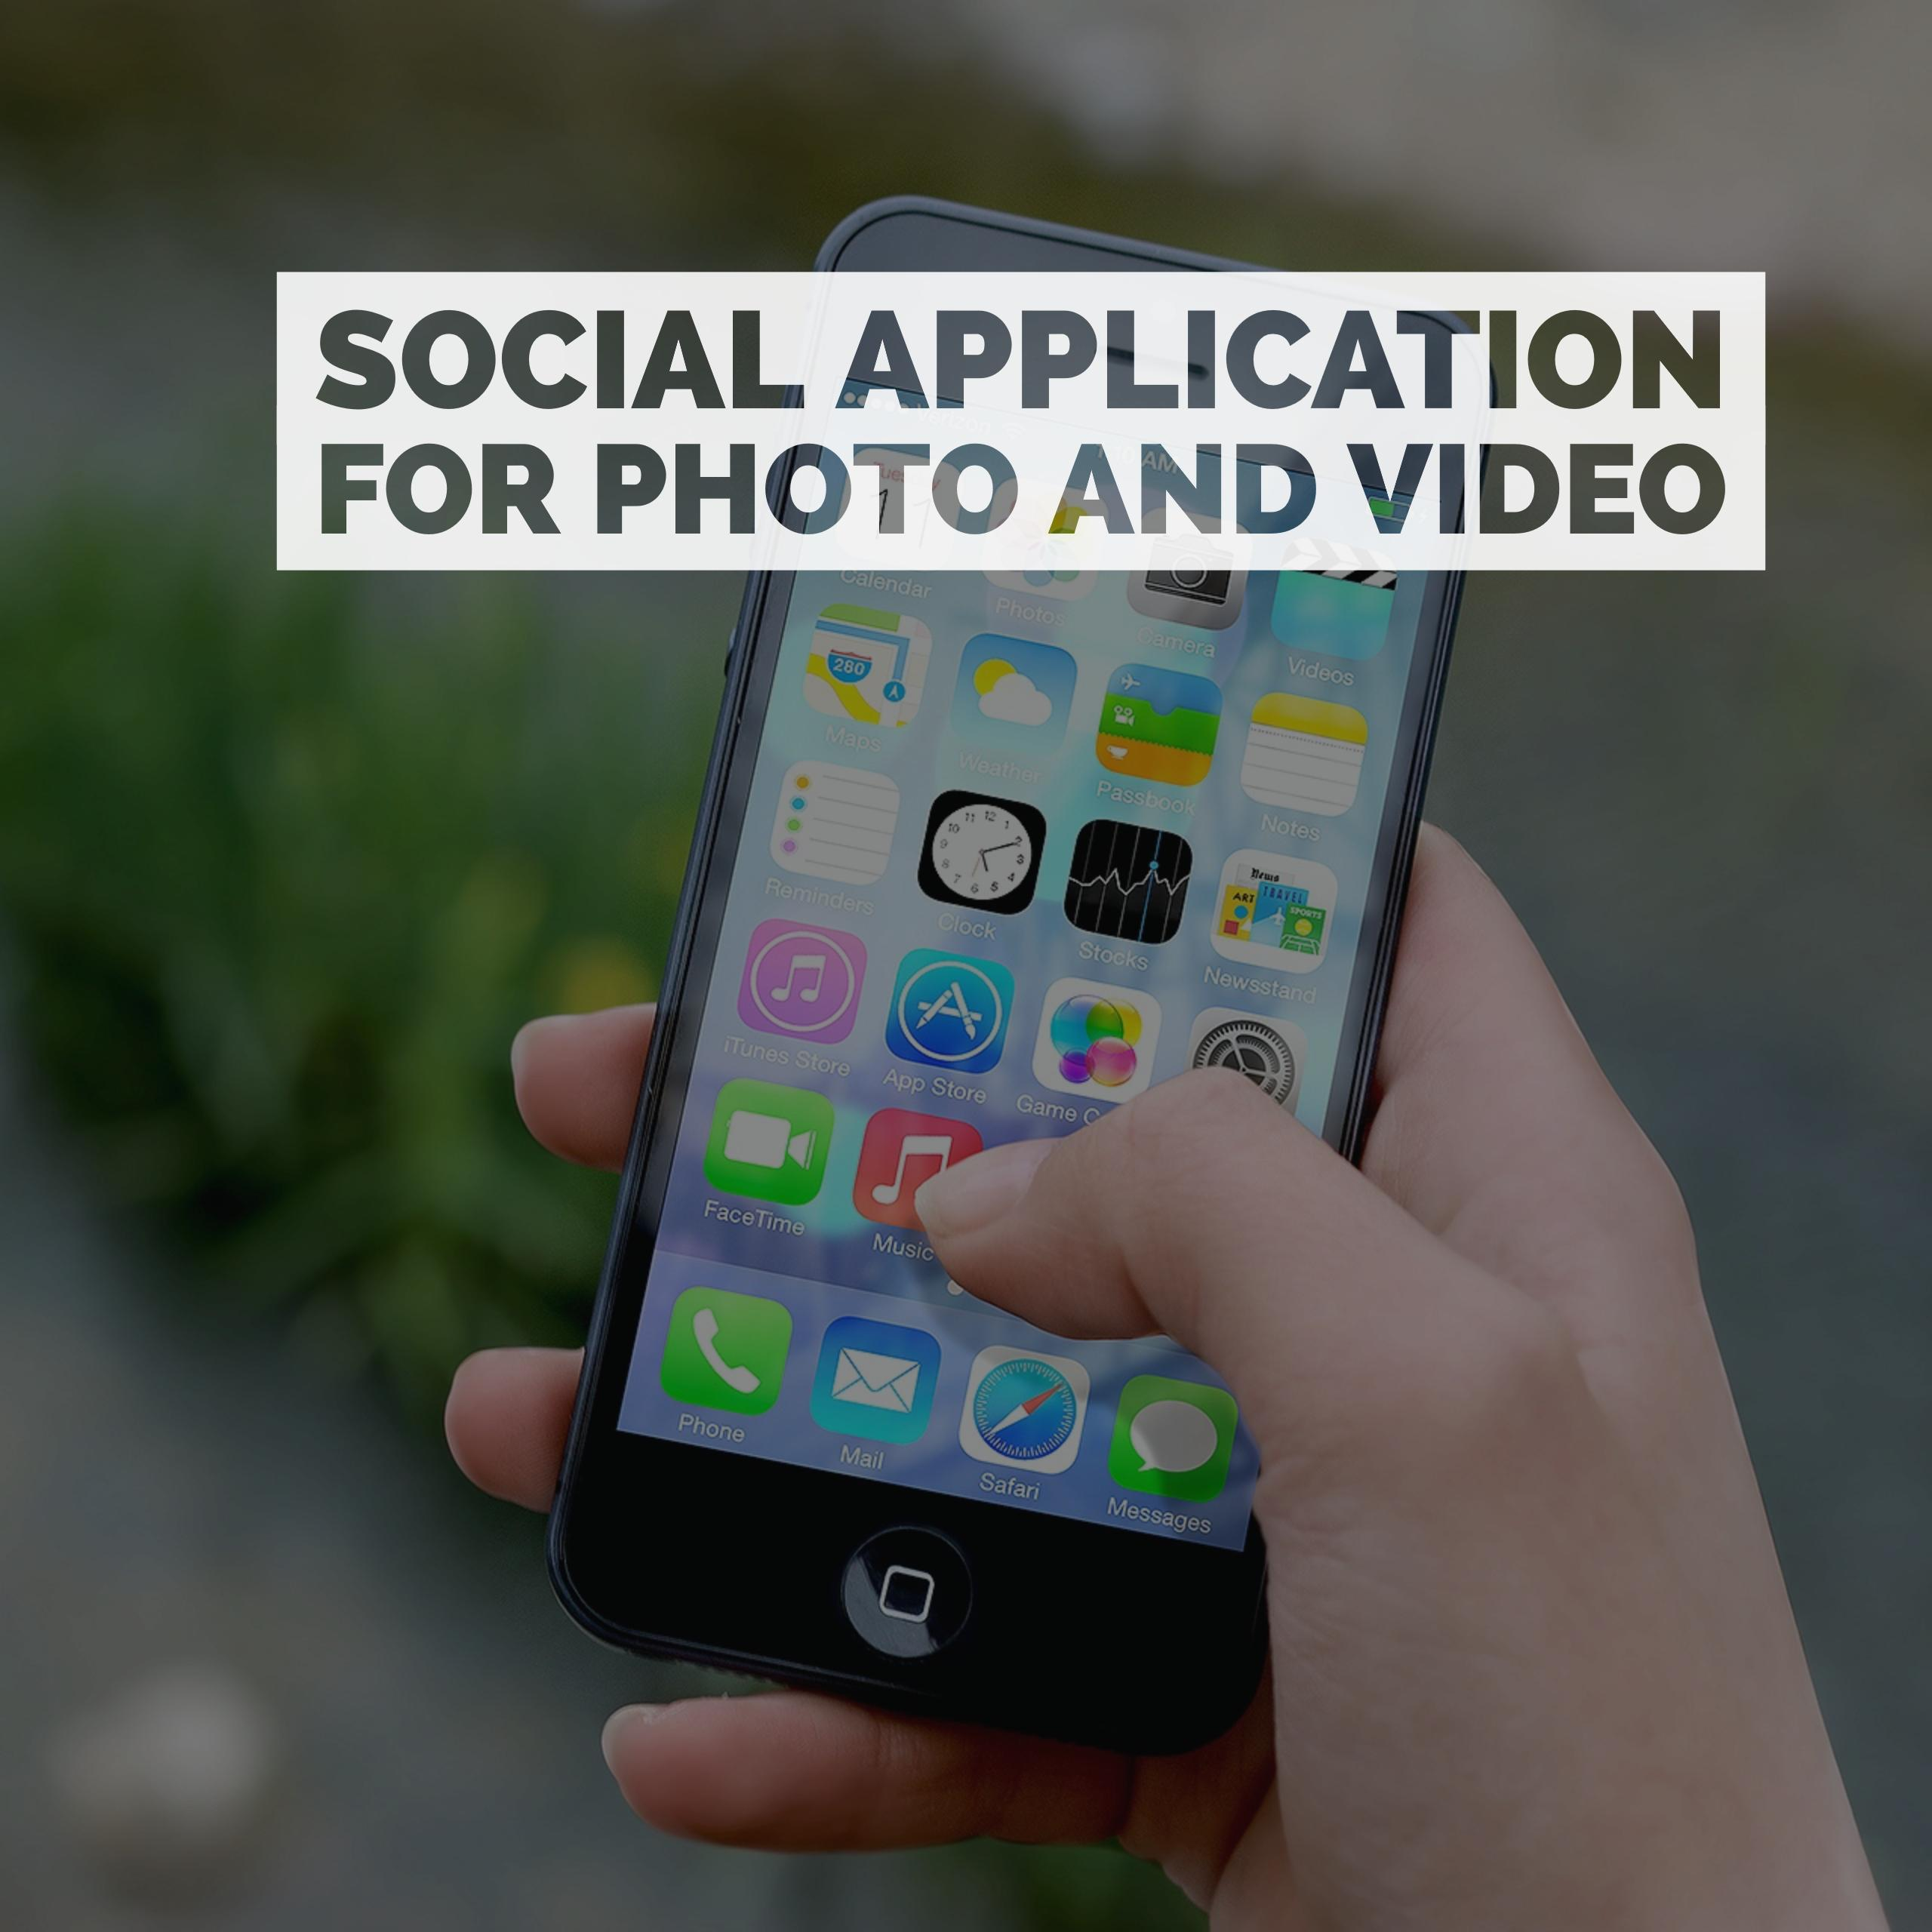 Social Application for Photo and Video